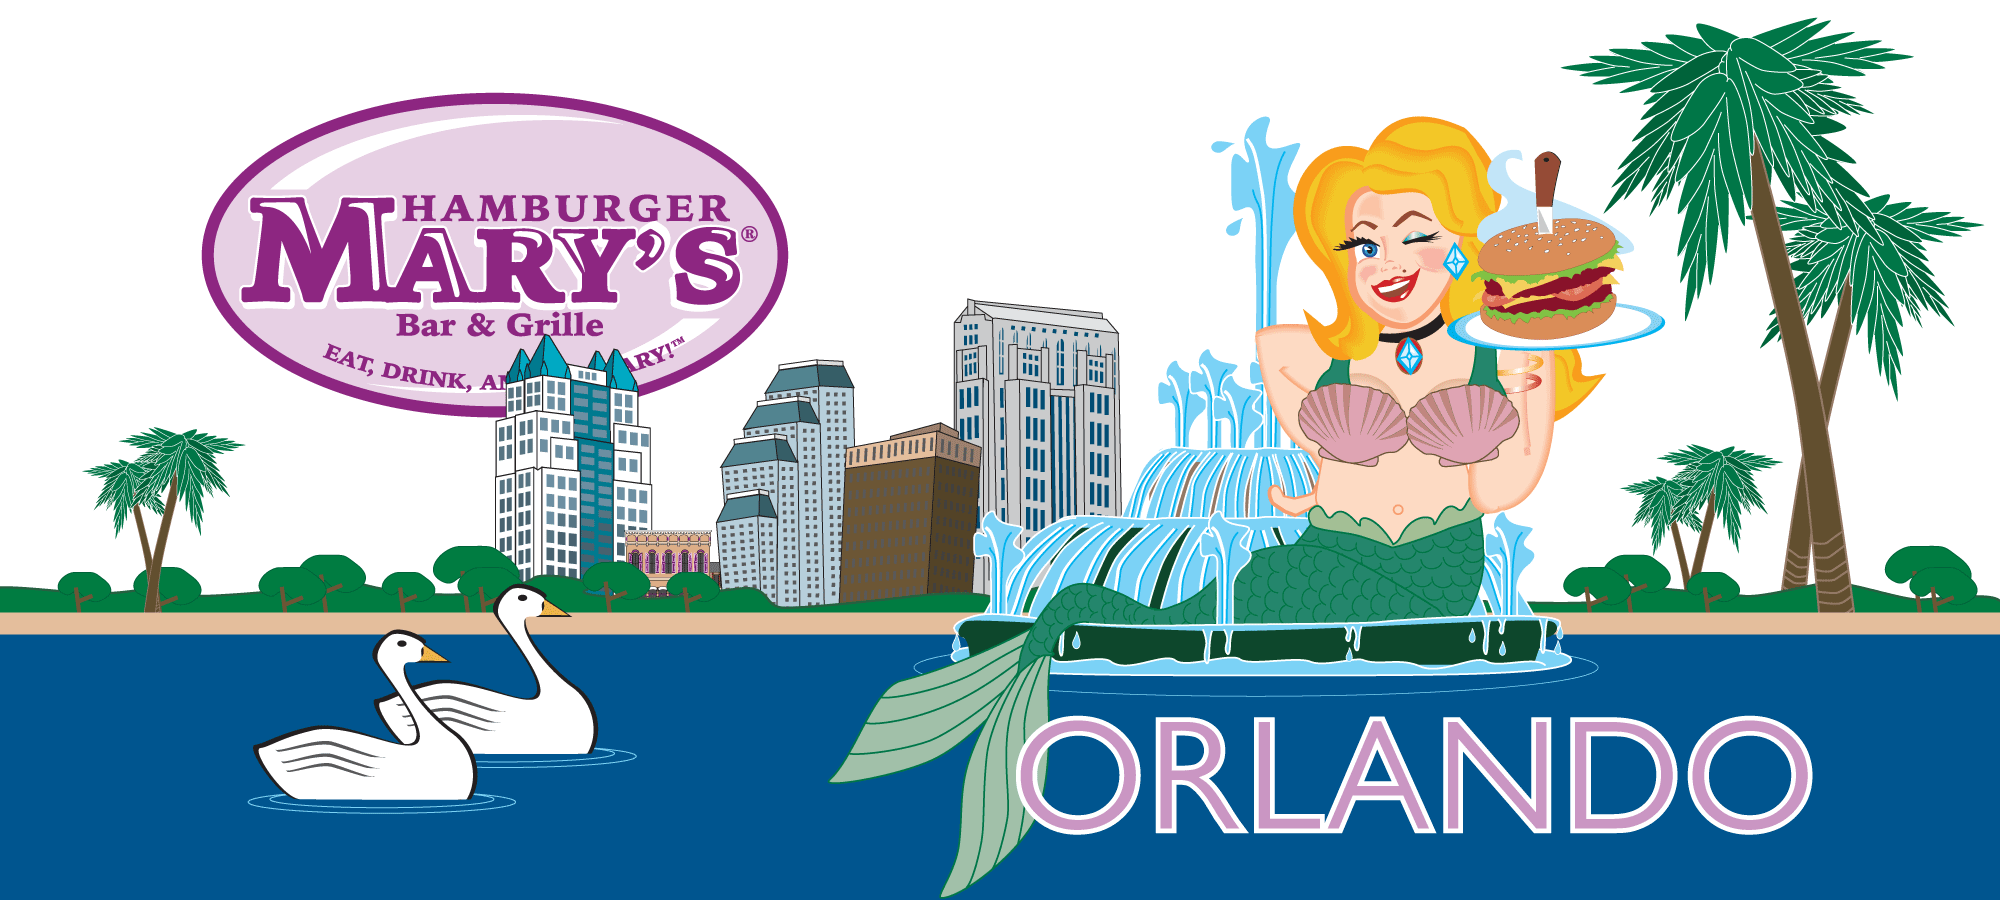 Hamburger Marys Orlando Skyline